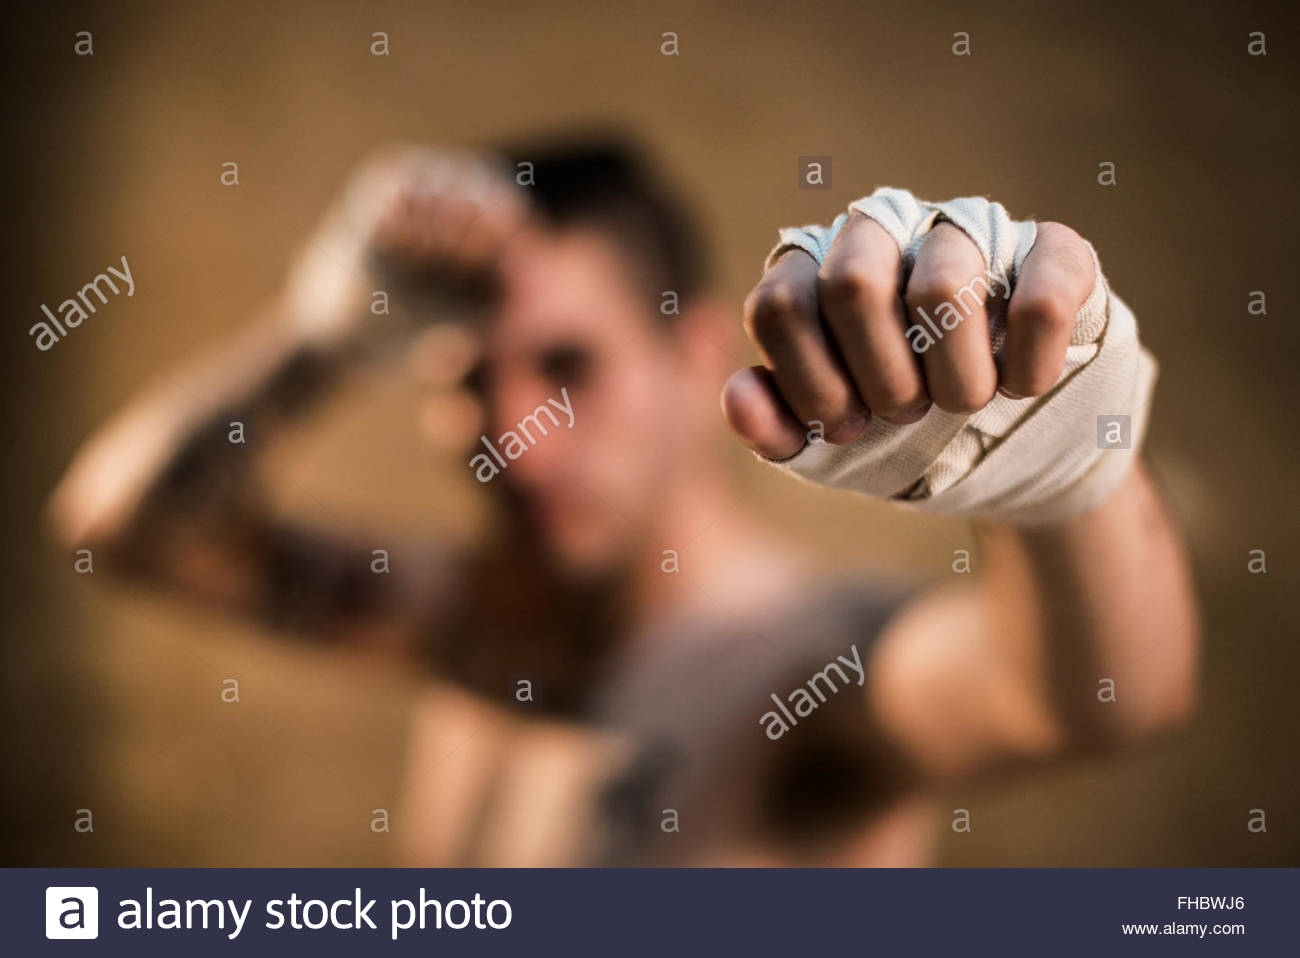 Bandaged hand of muay thai fighter - Stock Image